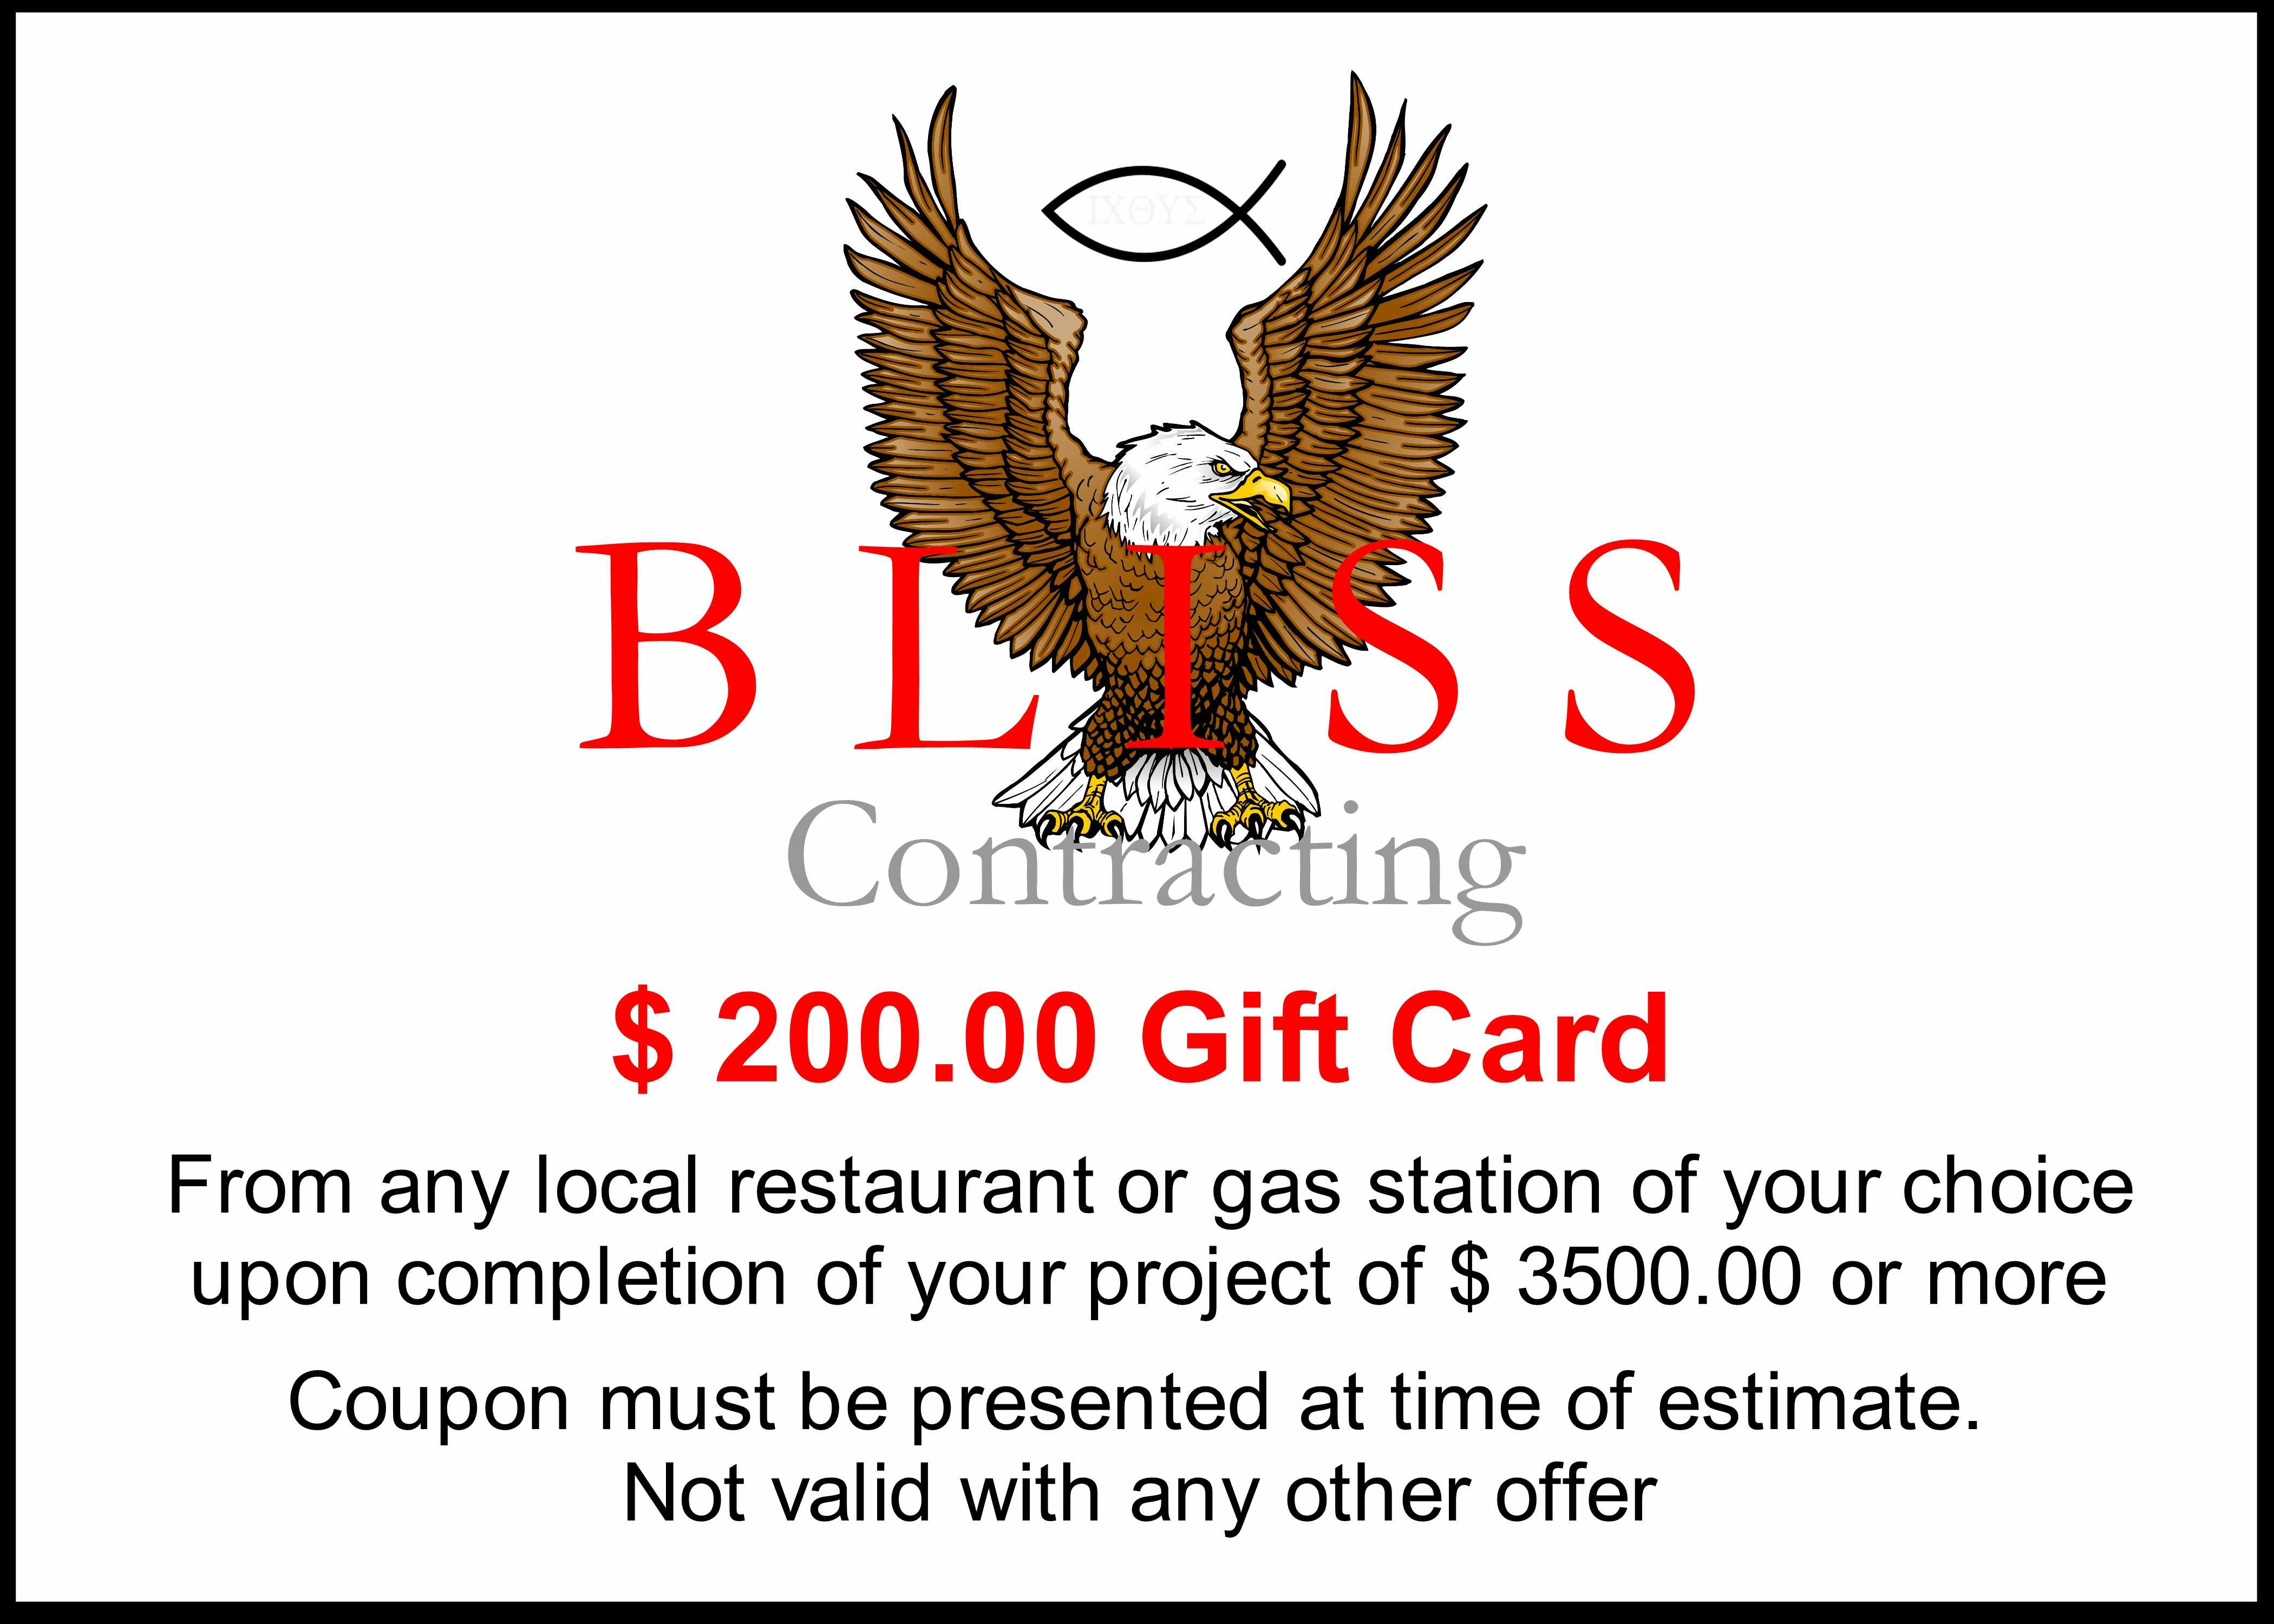 Special Offer Bliss Contracting